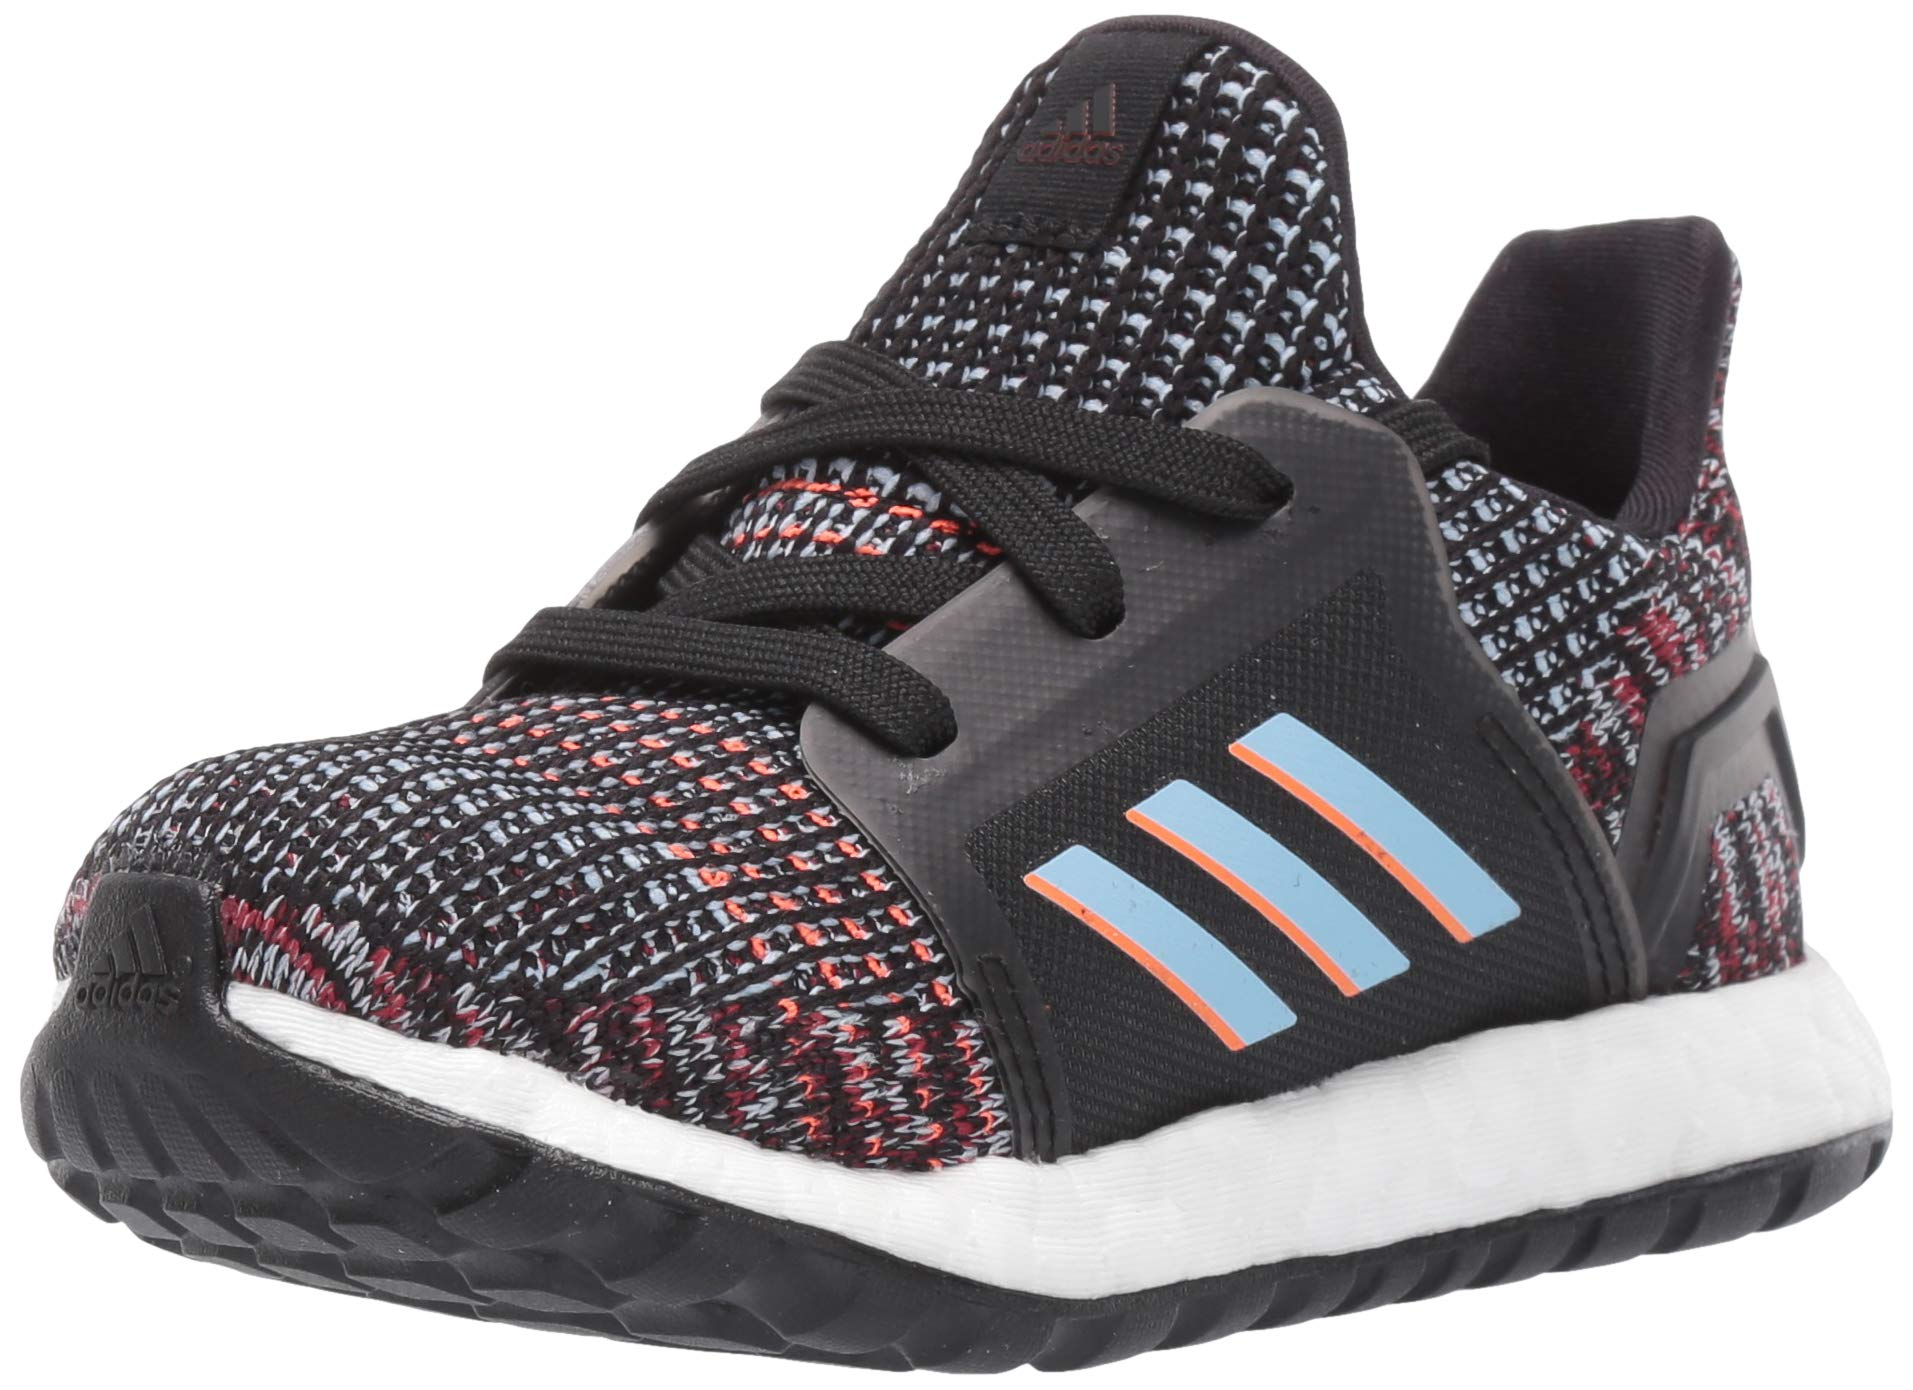 adidas Baby Ultraboost 19 Running Shoe, Black/Glow Blue/hi-res Coral, 9K M US Toddler